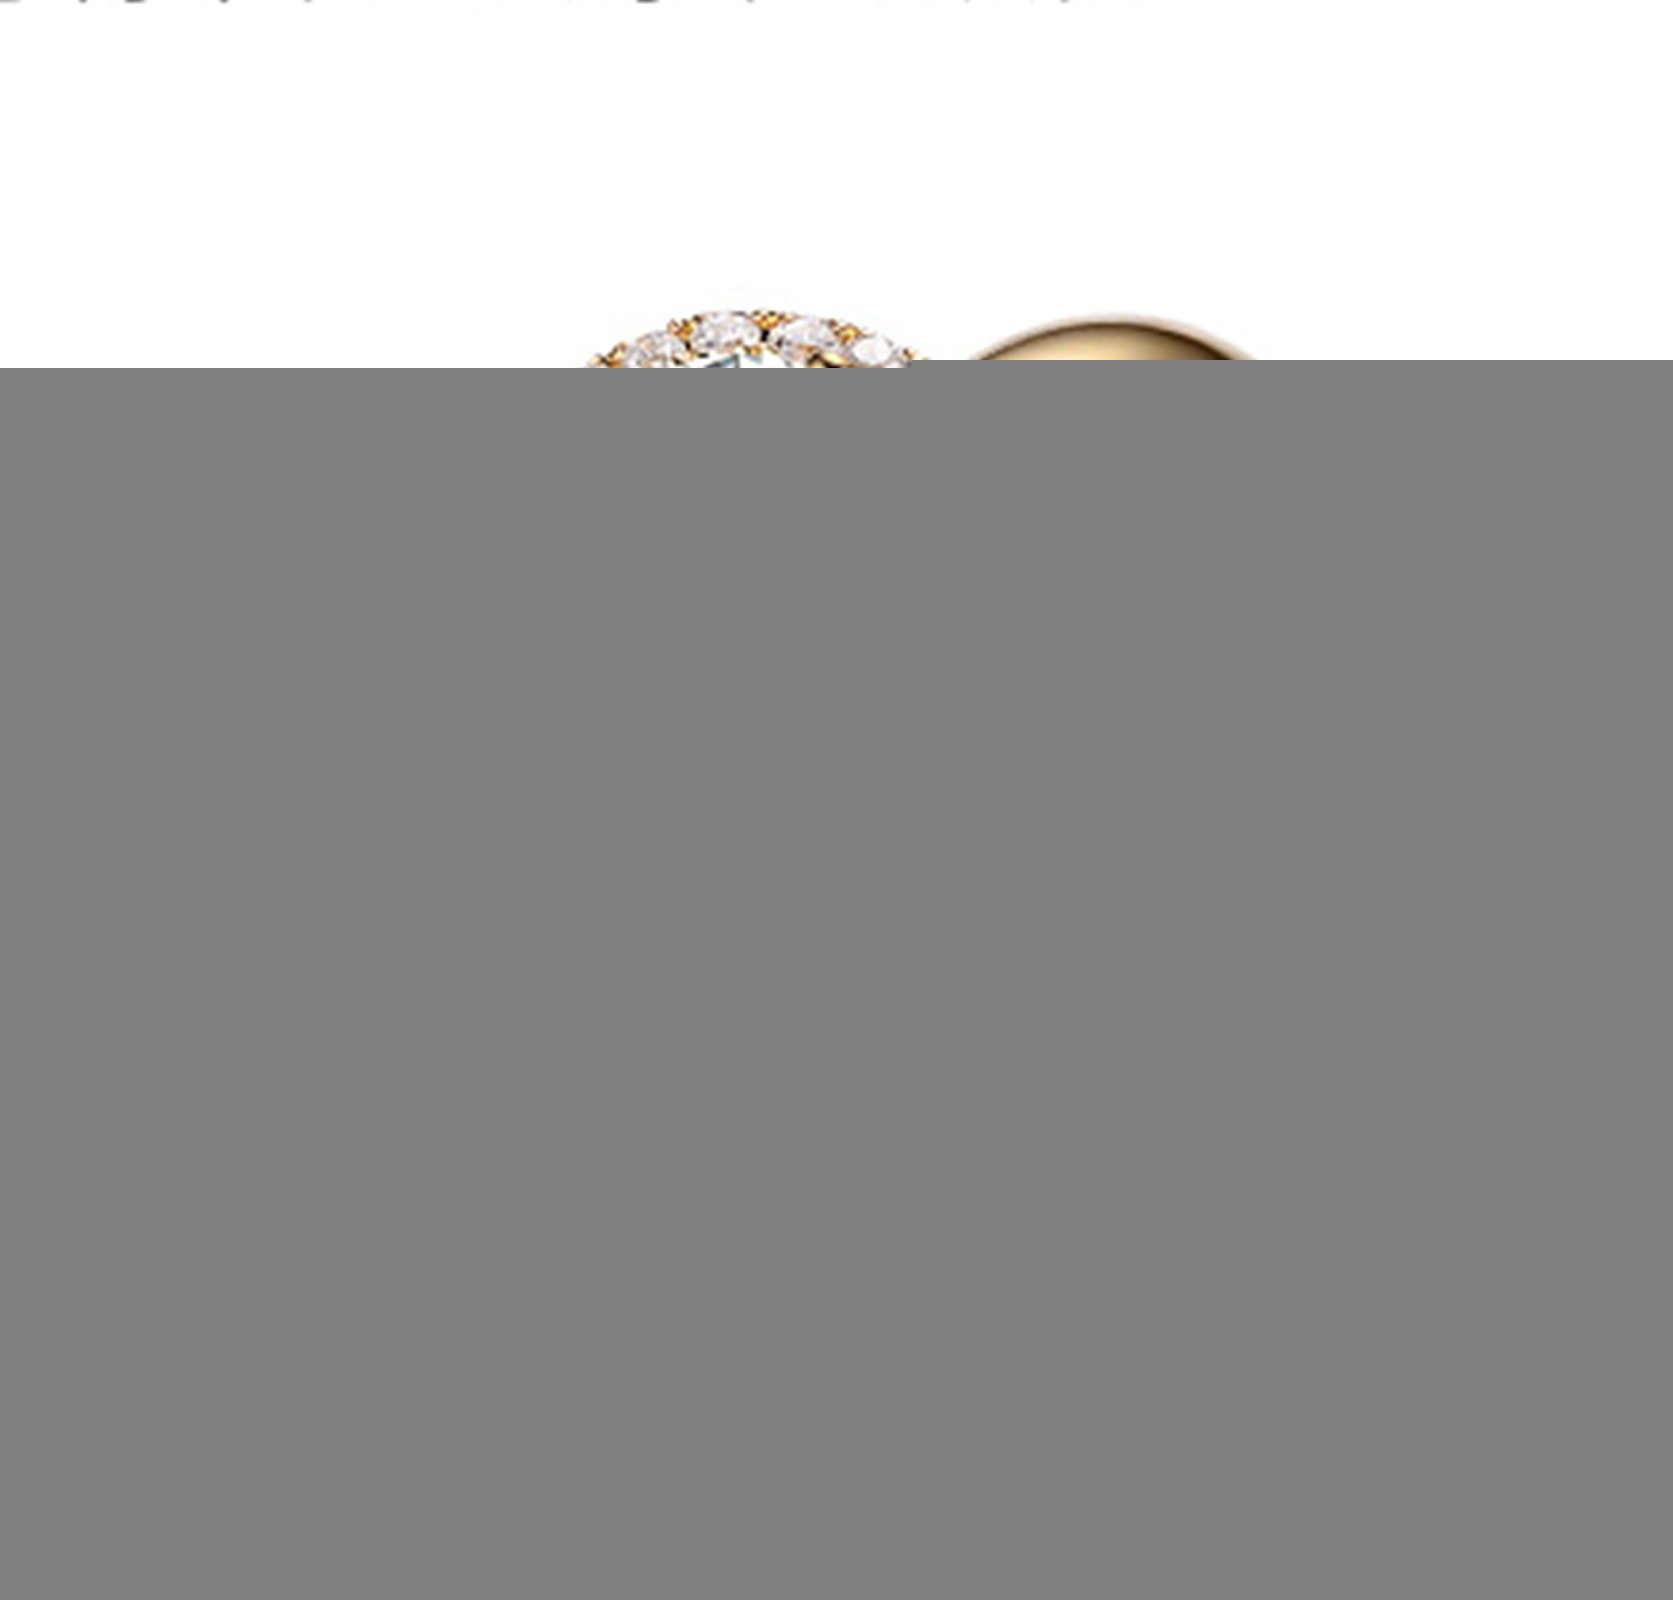 Gnzoe Rose Gold Women Wedding Rings Solitaire Promise Rings Crown Flowers Yellow with White Blue 0.3ct Diamond Size 6.5 by Gnzoe